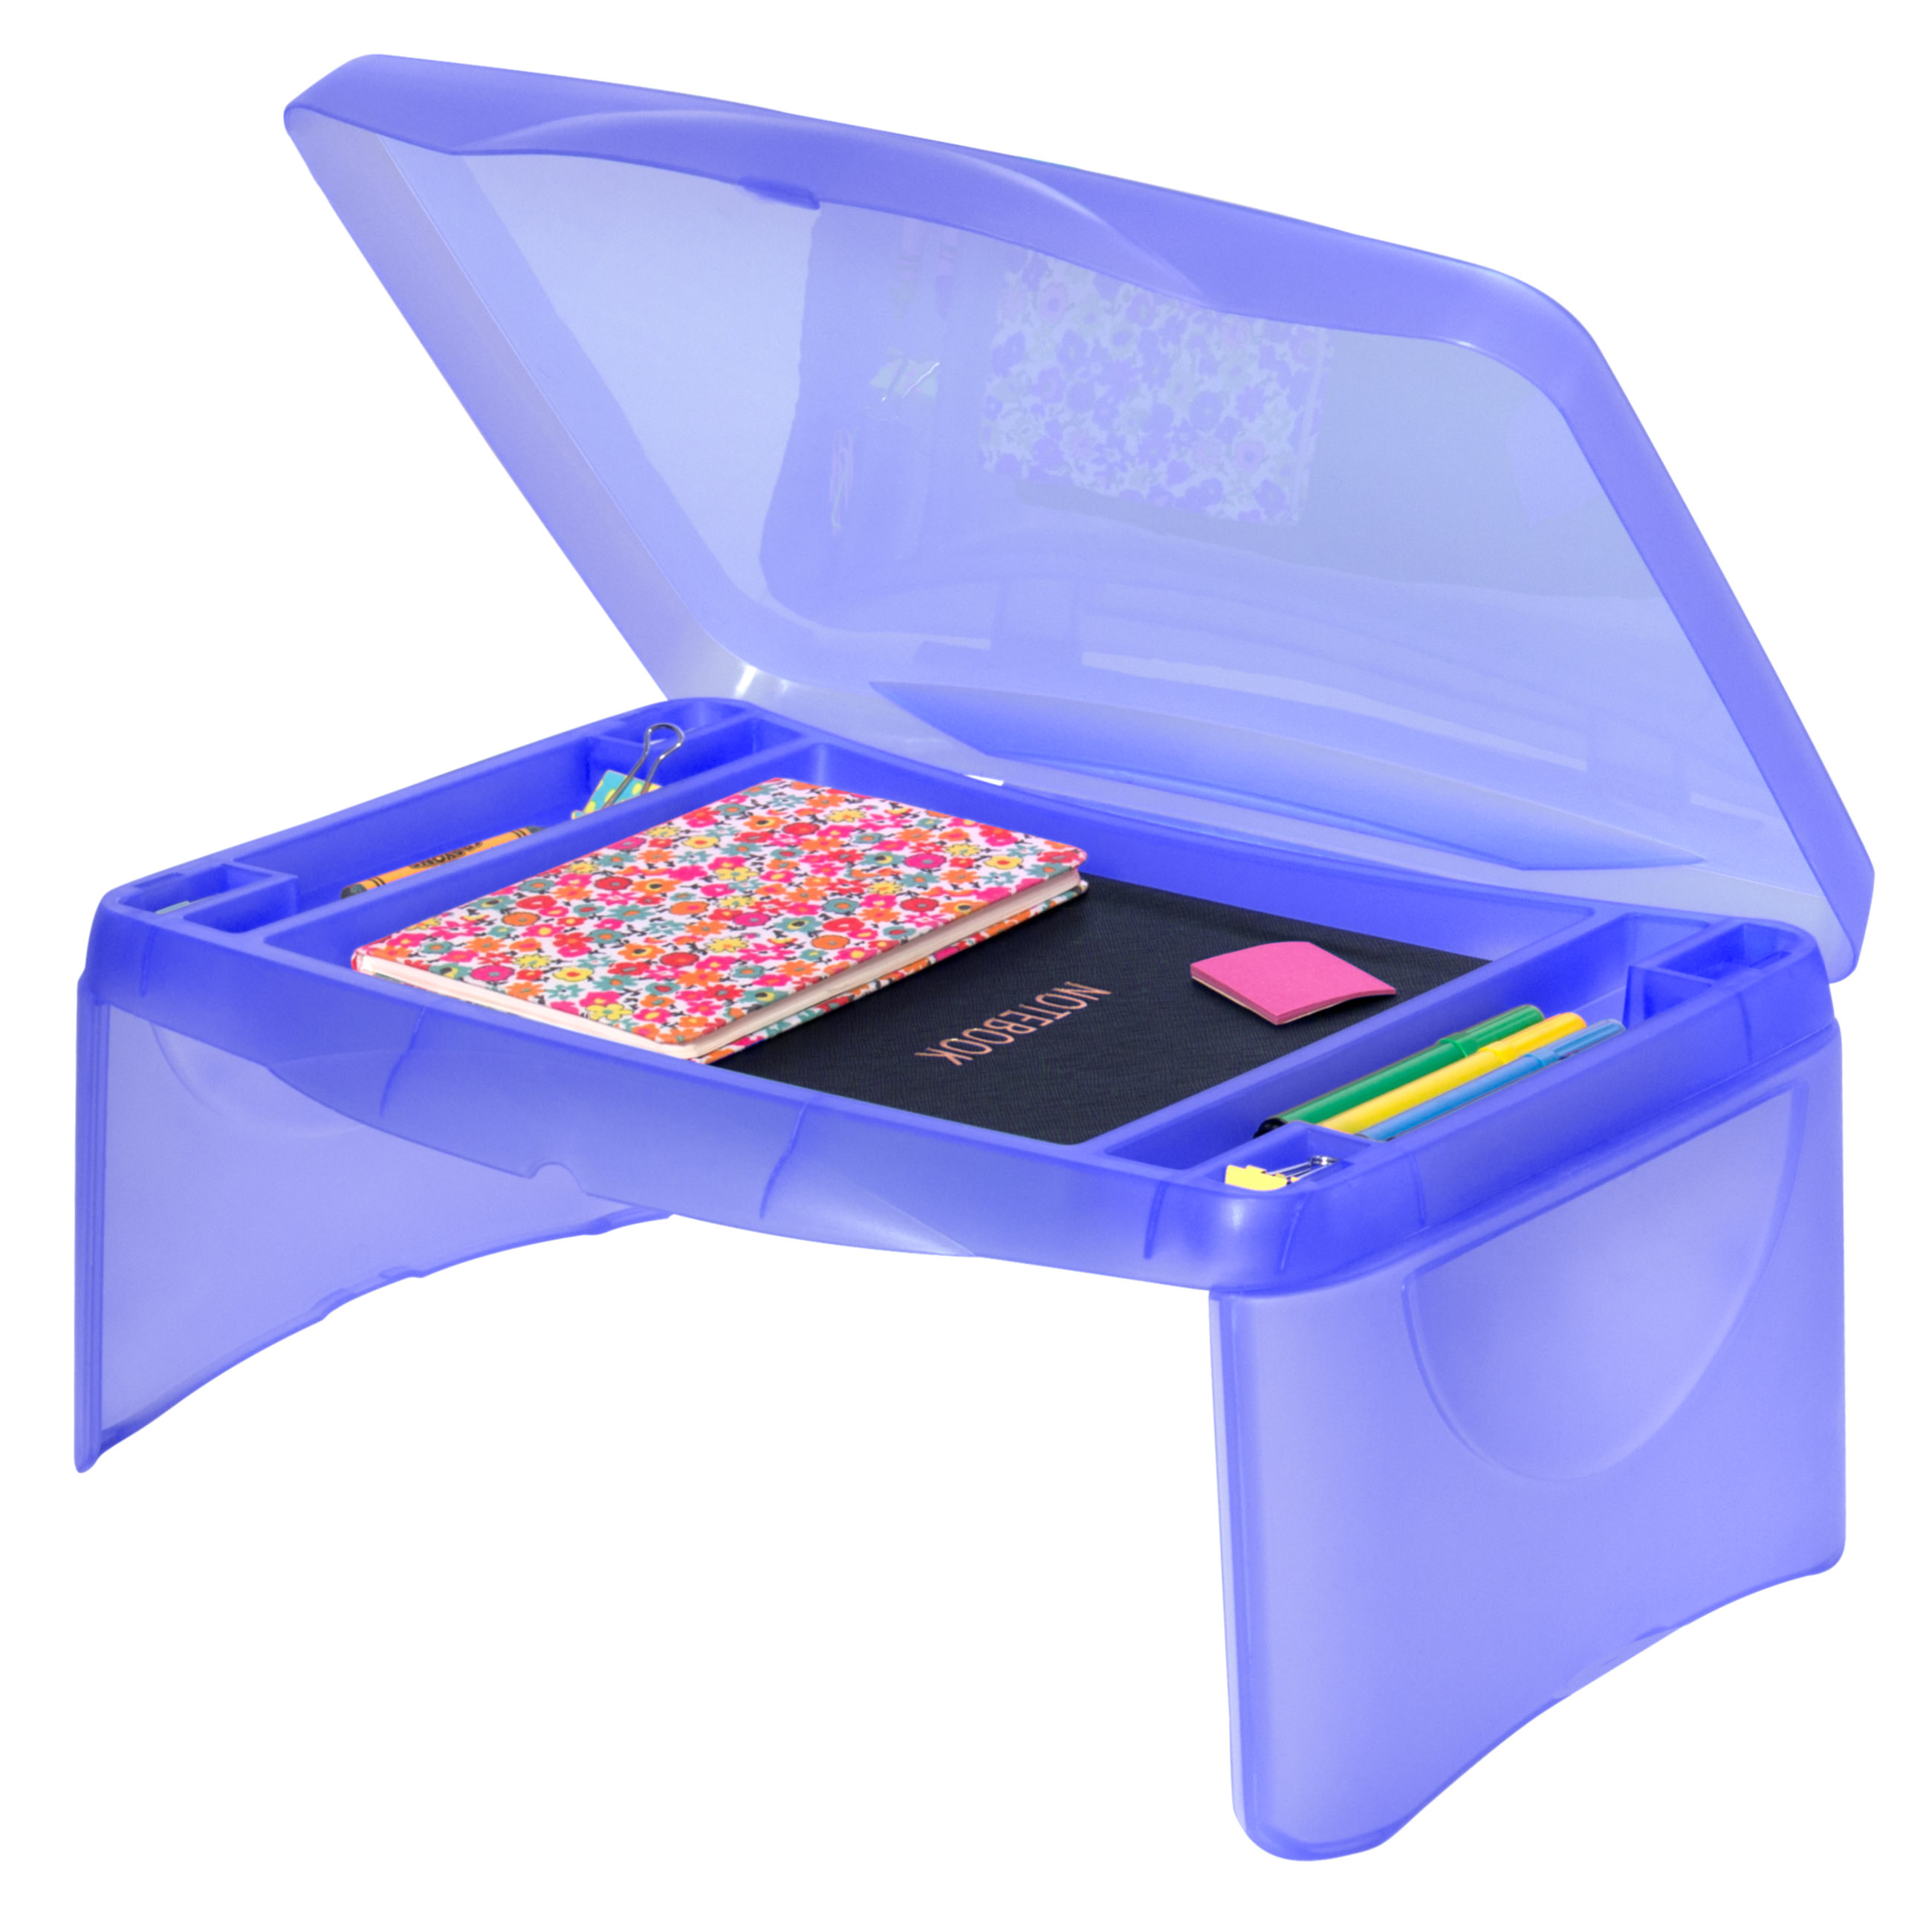 Best Choice Products Kids Foldable Lap Desk with Storage